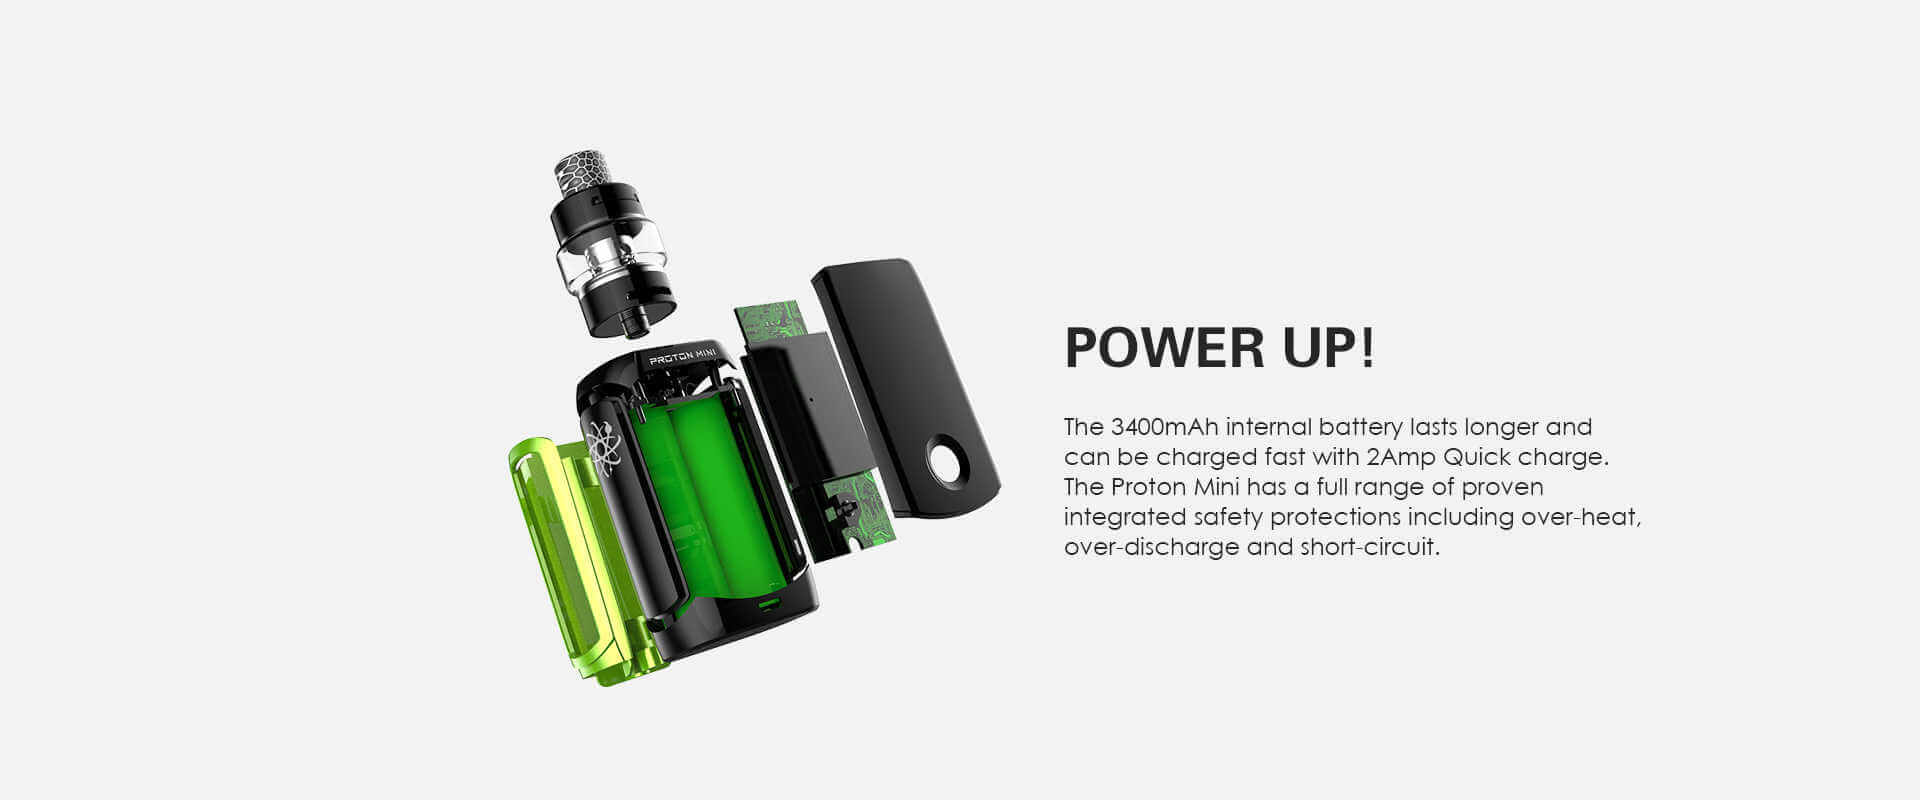 The Proton Mini Mod has an internal 3400mAh built in battery.